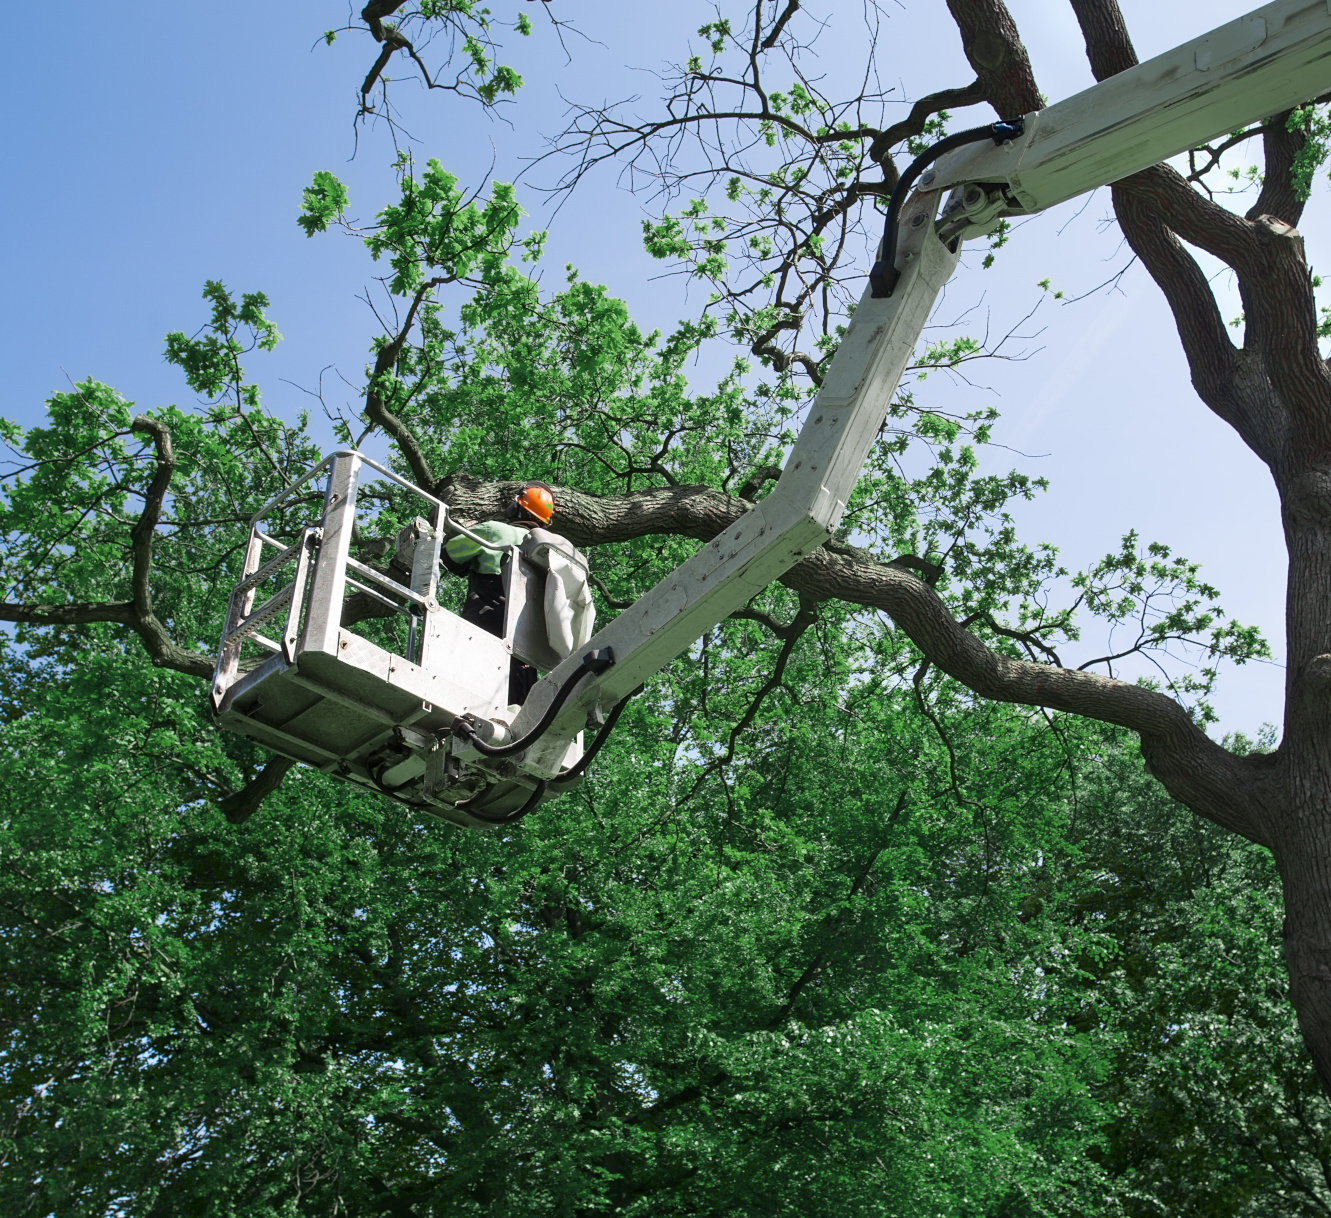 Professional Tree Service Business based in Cottage Grove, Oregon serving Springfield, Eugene, Creswell, Veneta and beyond!